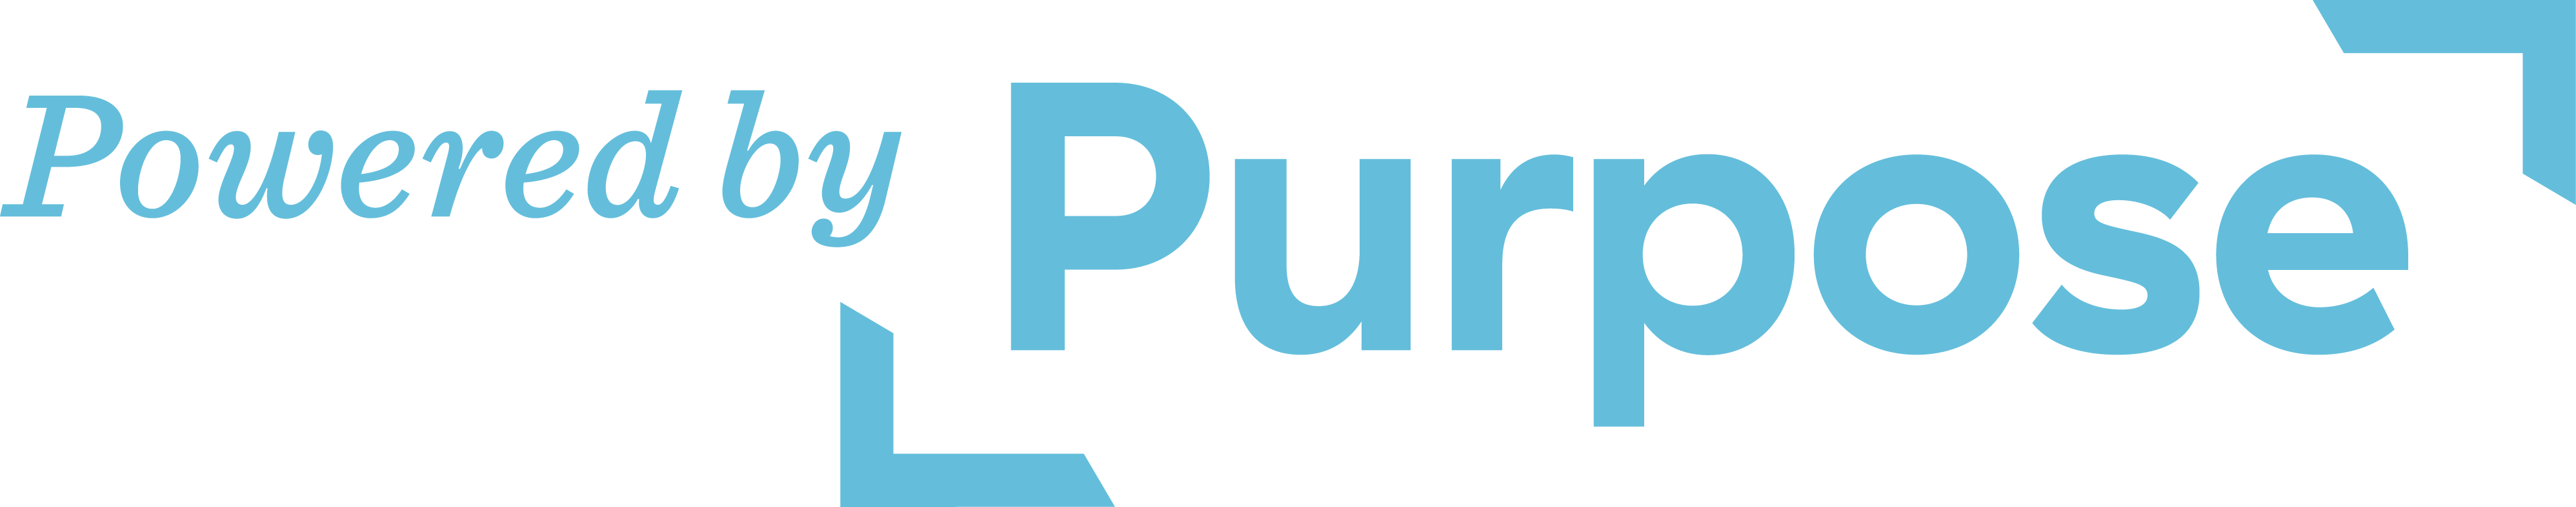 Powered by Purpose blue and white letters